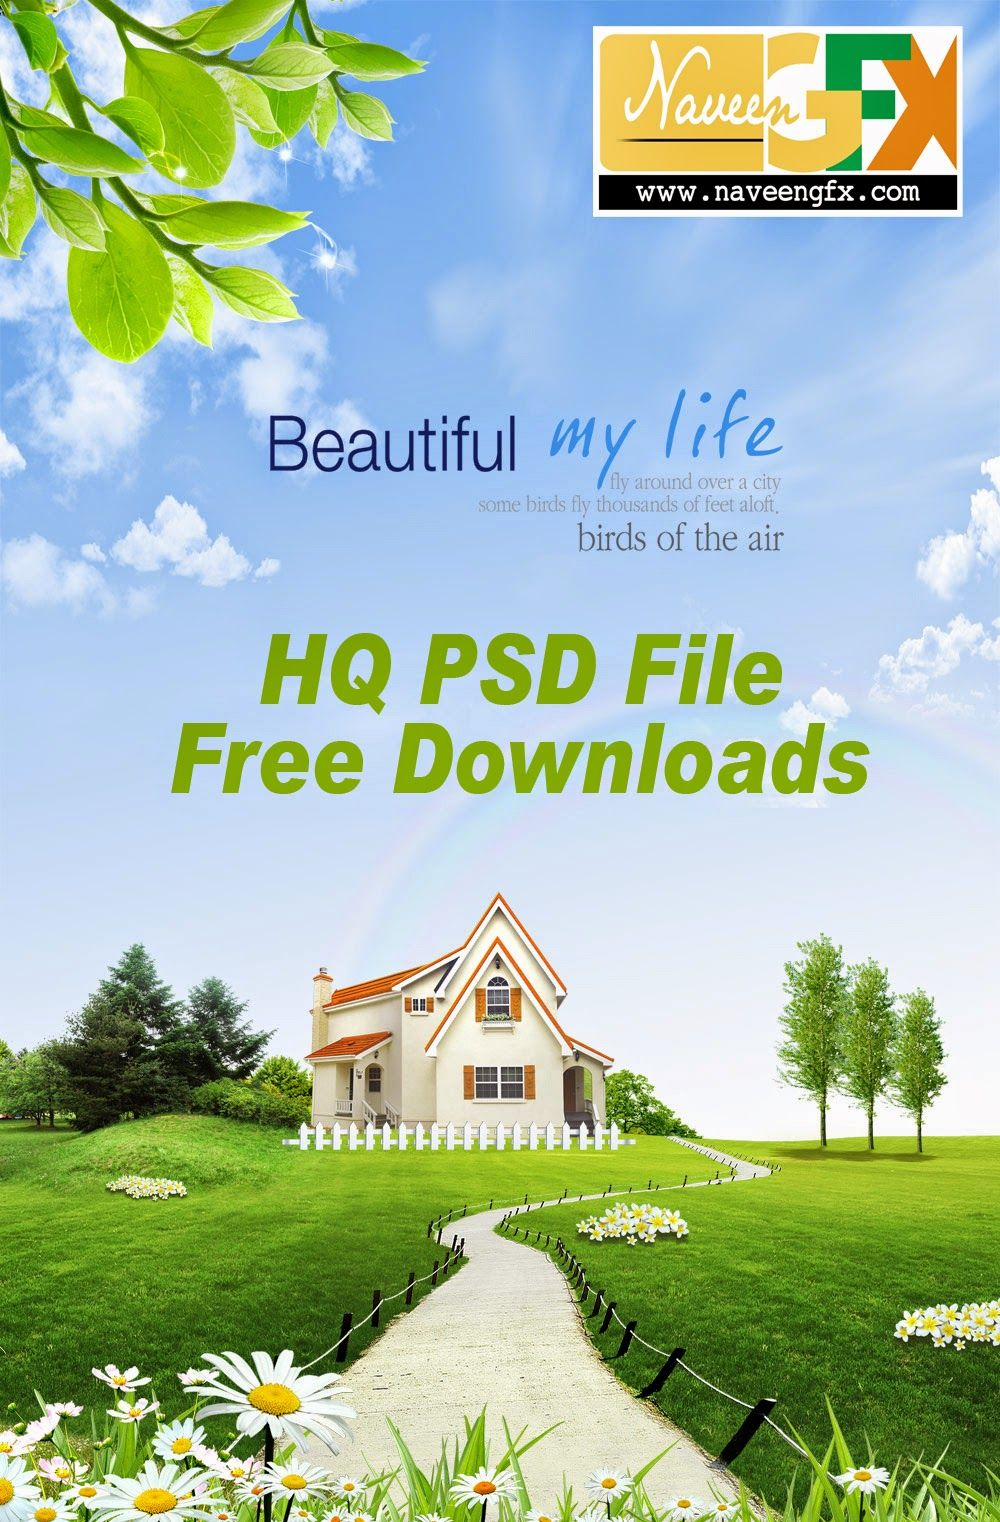 Www Naveengfx Com Spring Psd Background Free Download Psd Files